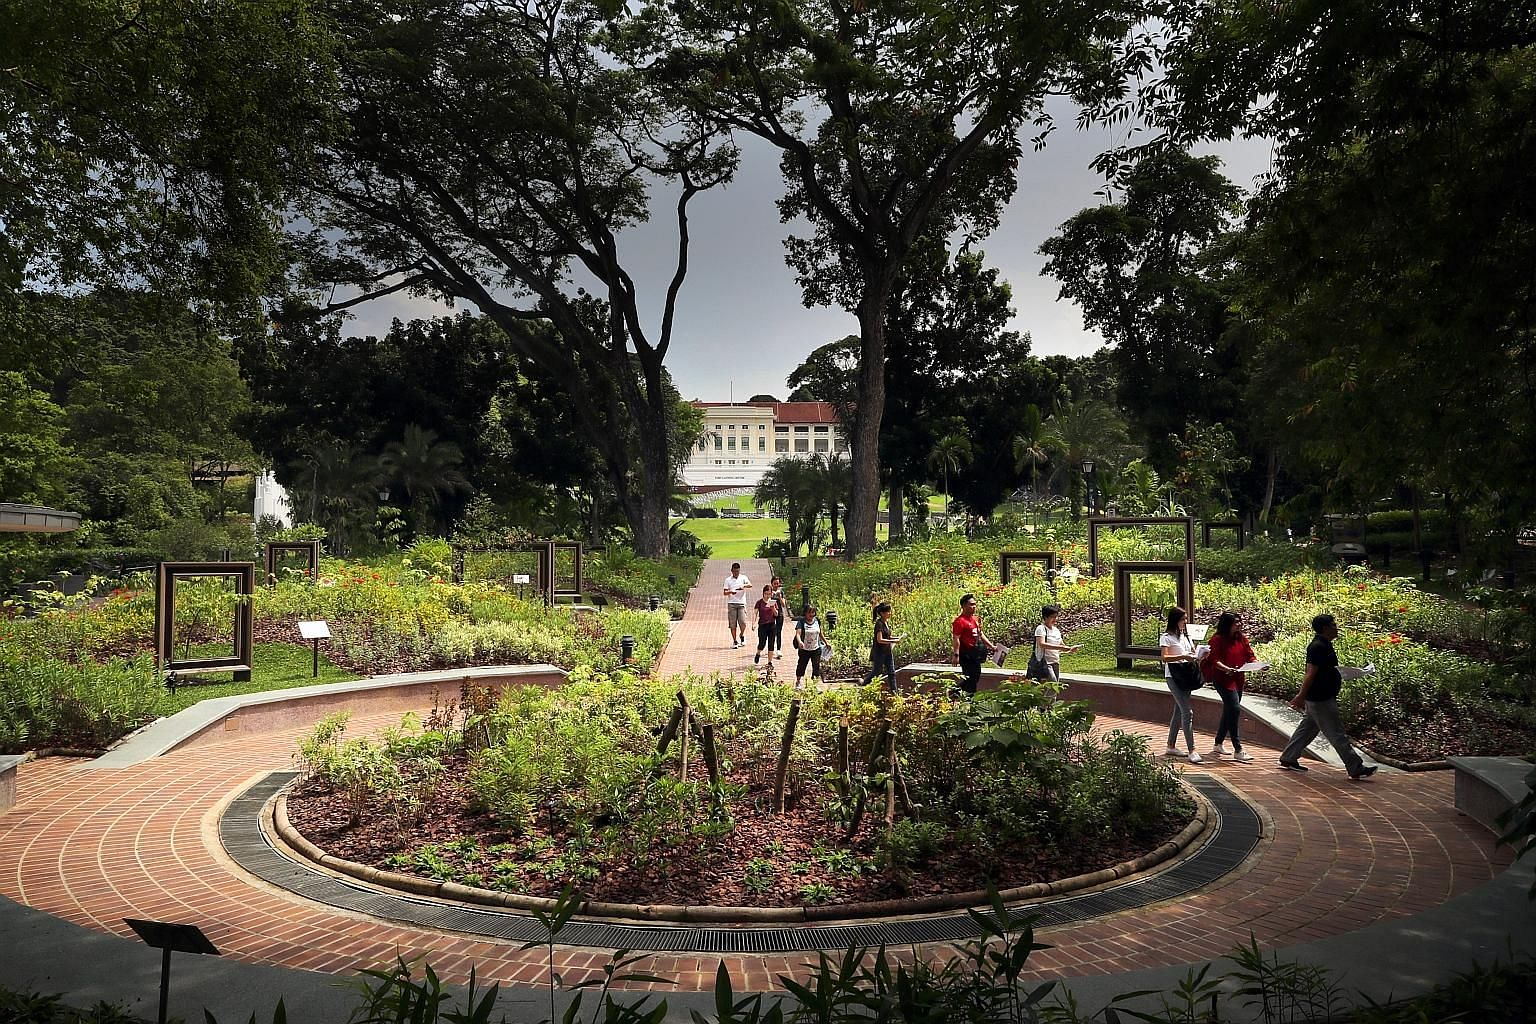 Left: Farquhar Garden was named after Major-General William Farquhar, the first British Resident and Commandant of Singapore, who had a keen interest in natural history. This garden features some of the species he found noteworthy, such as guava, tar